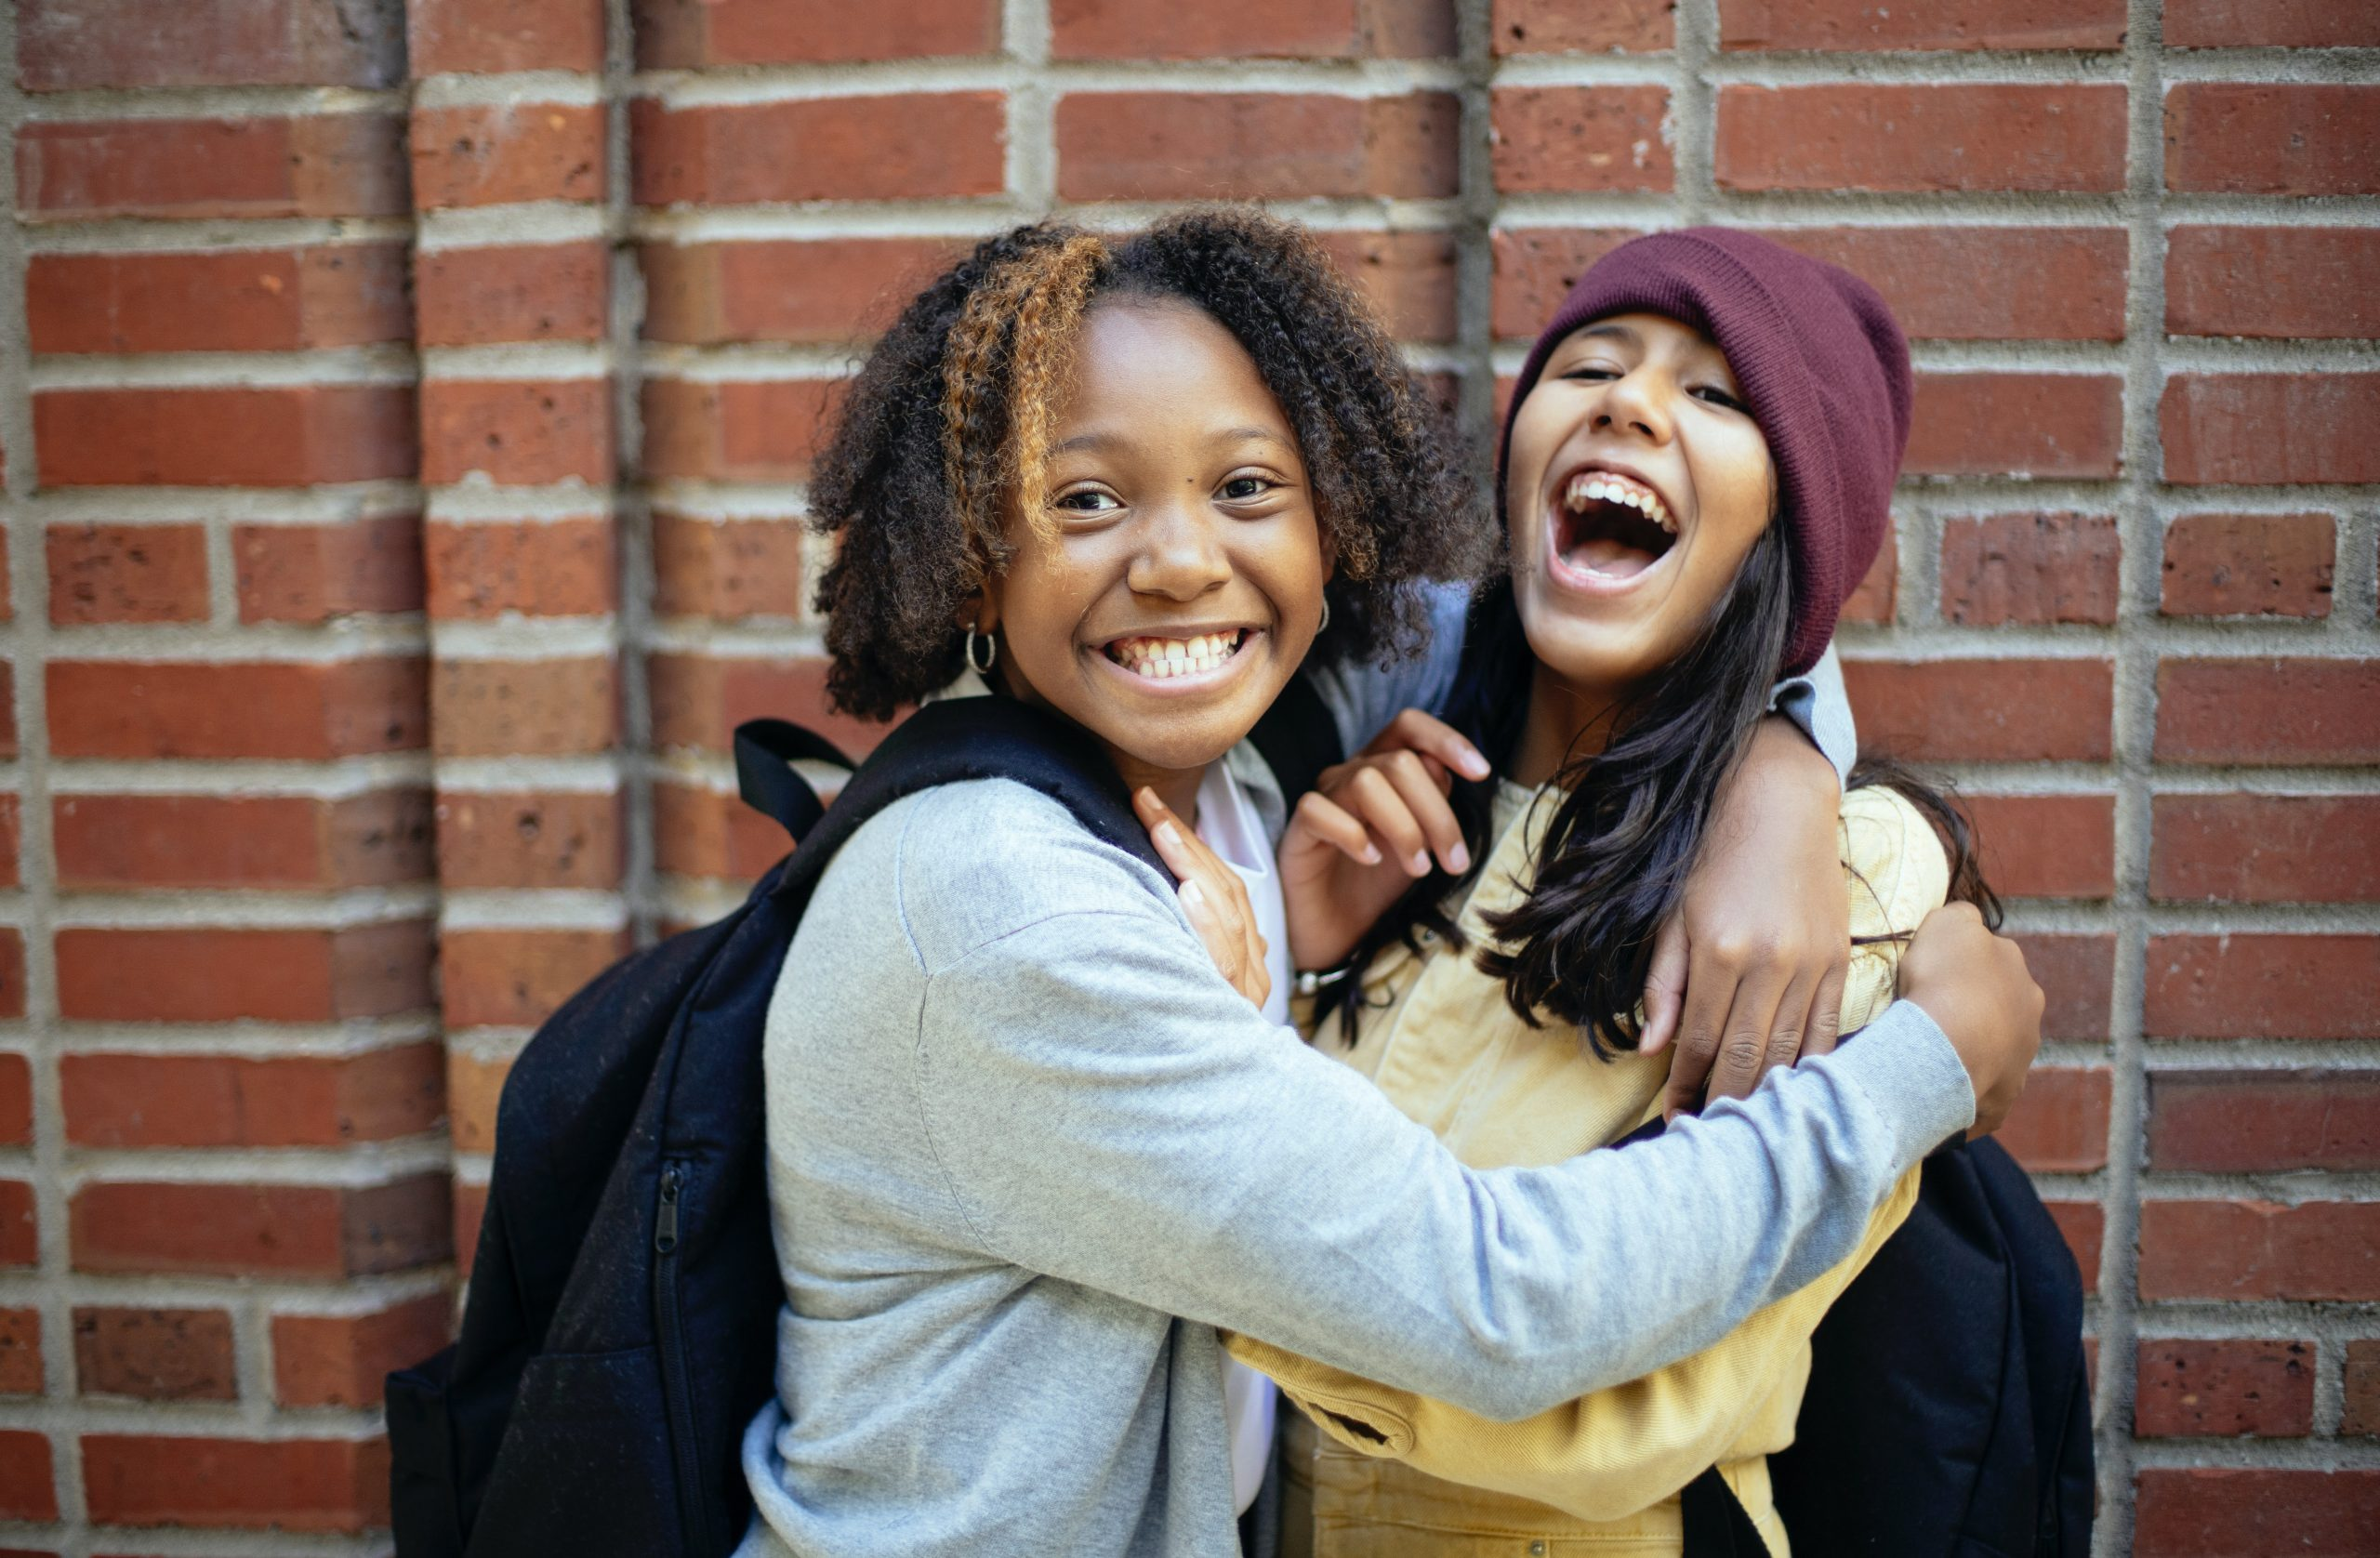 Image of two young people holding each other in a hug. This image illustrates how those in need of psychosis treatment in New York City may feel after treating their psychosis symptoms.   10001   10002